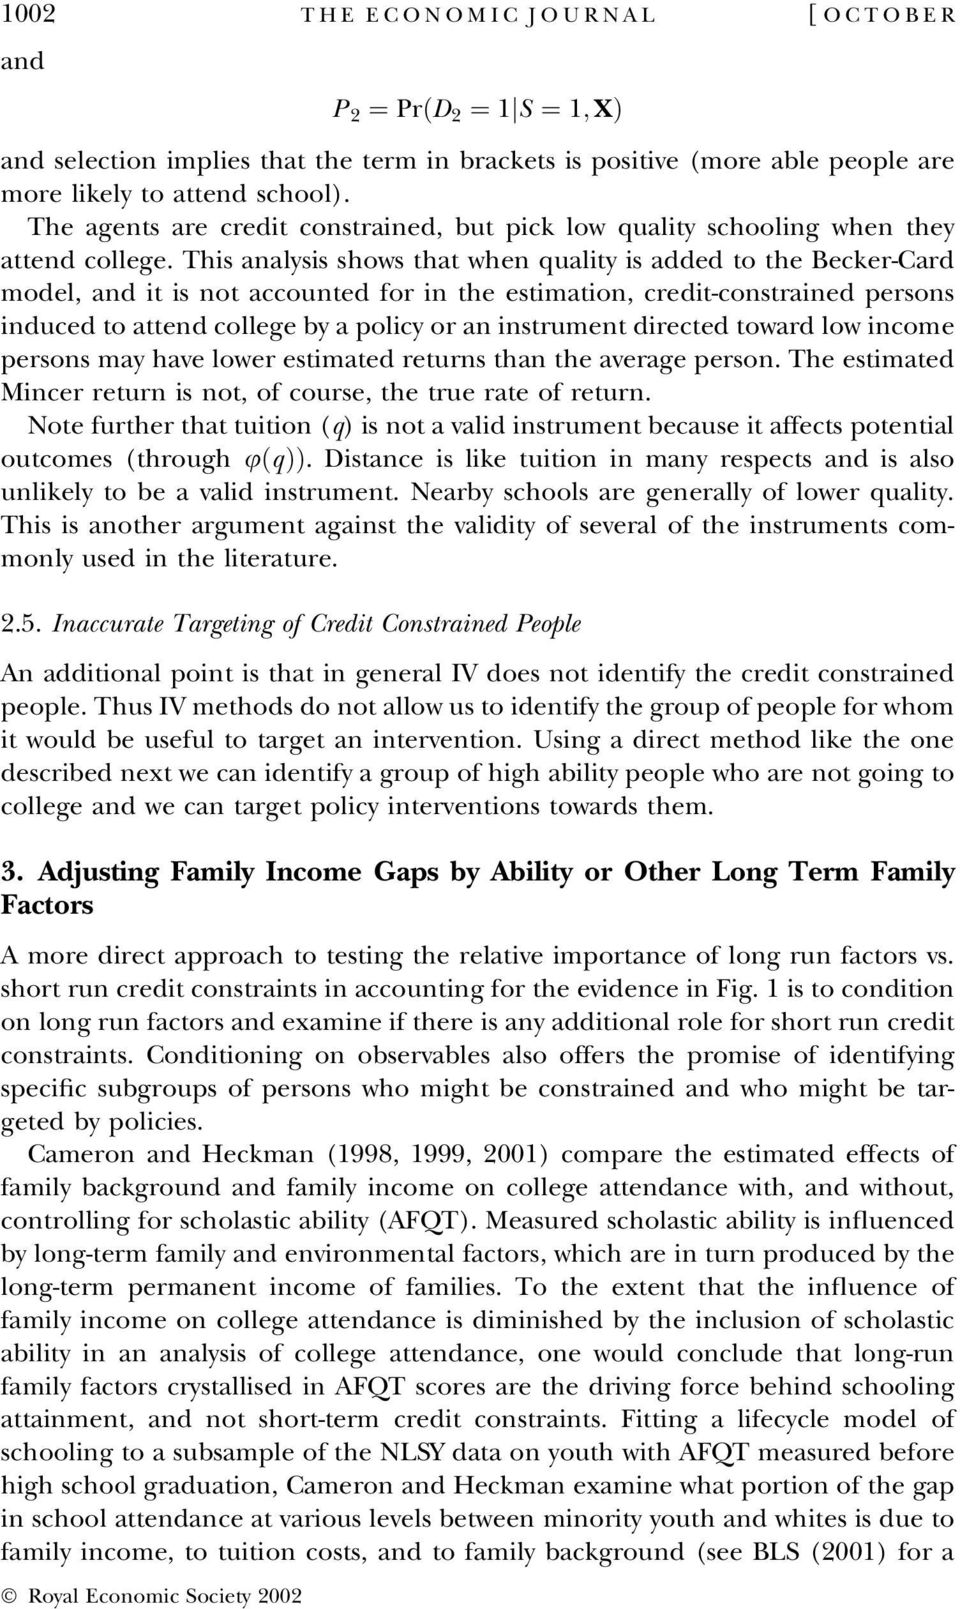 This analysis shows that when quality is added to the Becker-Card model, and it is not accounted for in the estimation, credit-constrained persons induced to attend college by a policy or an